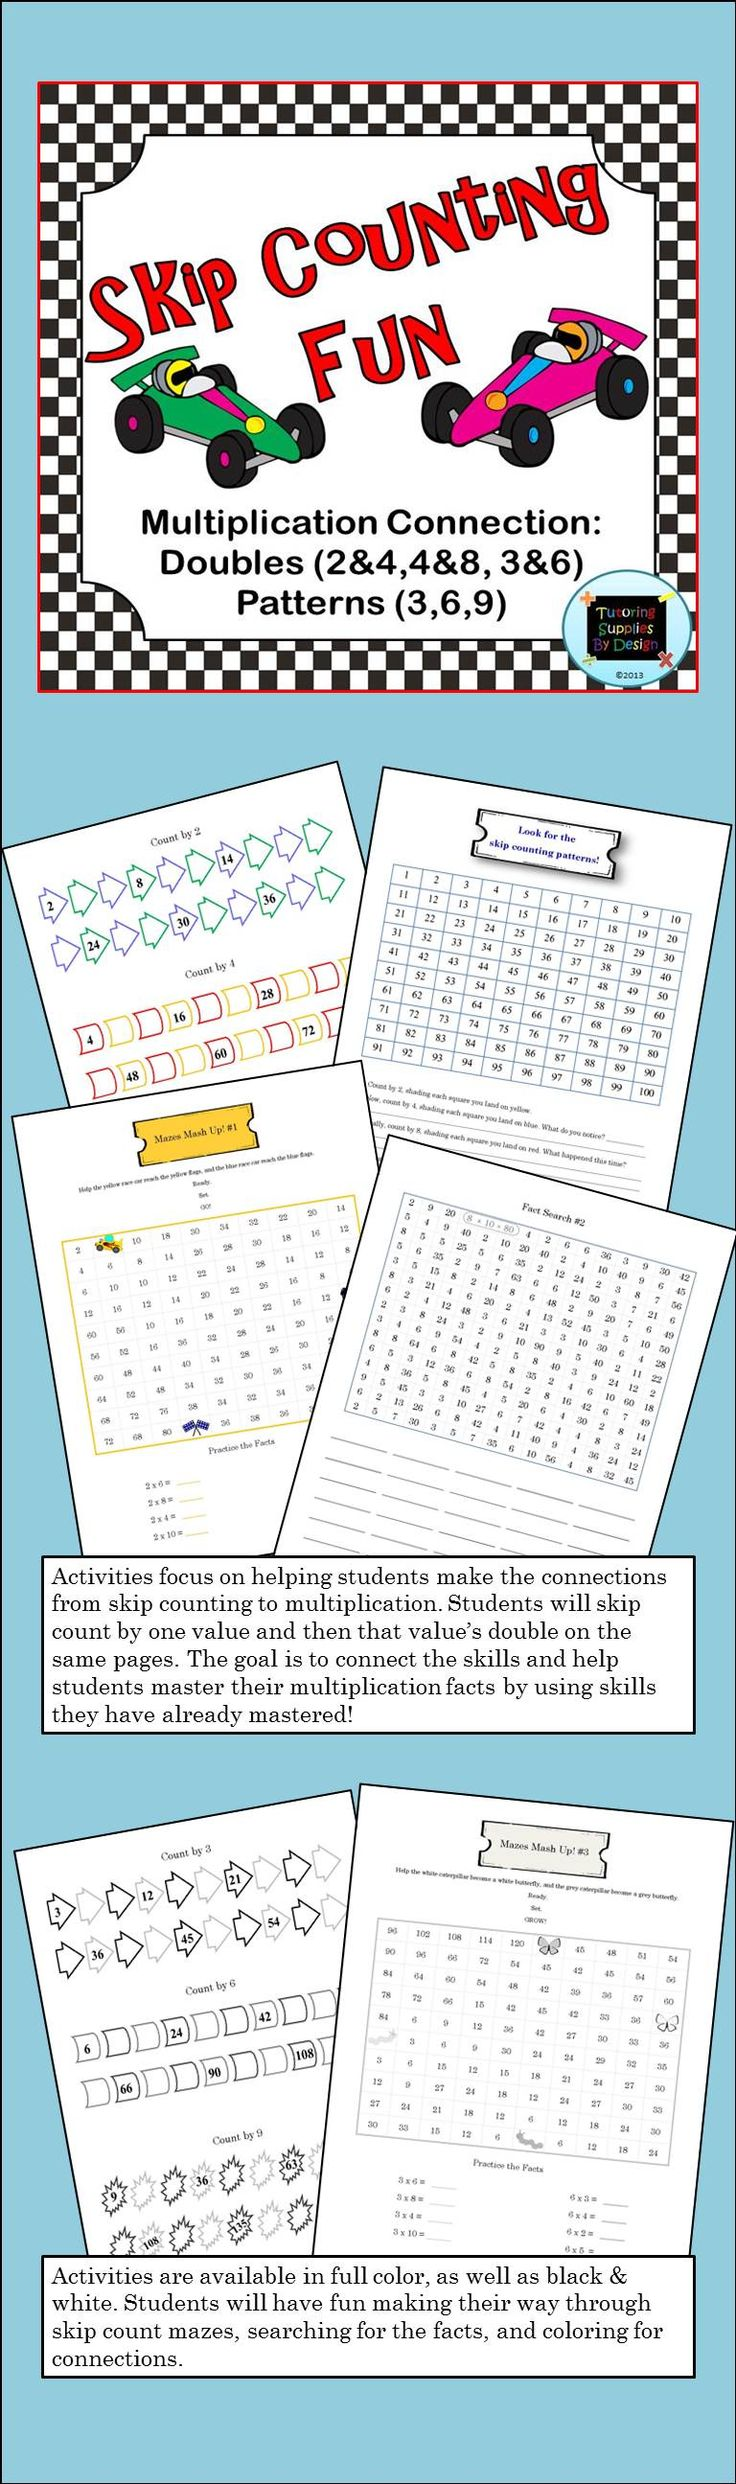 129 best second grade ccss images on pinterest teaching ideas newest skip counting product just released includes doubles connections maze mashups fact fandeluxe Image collections